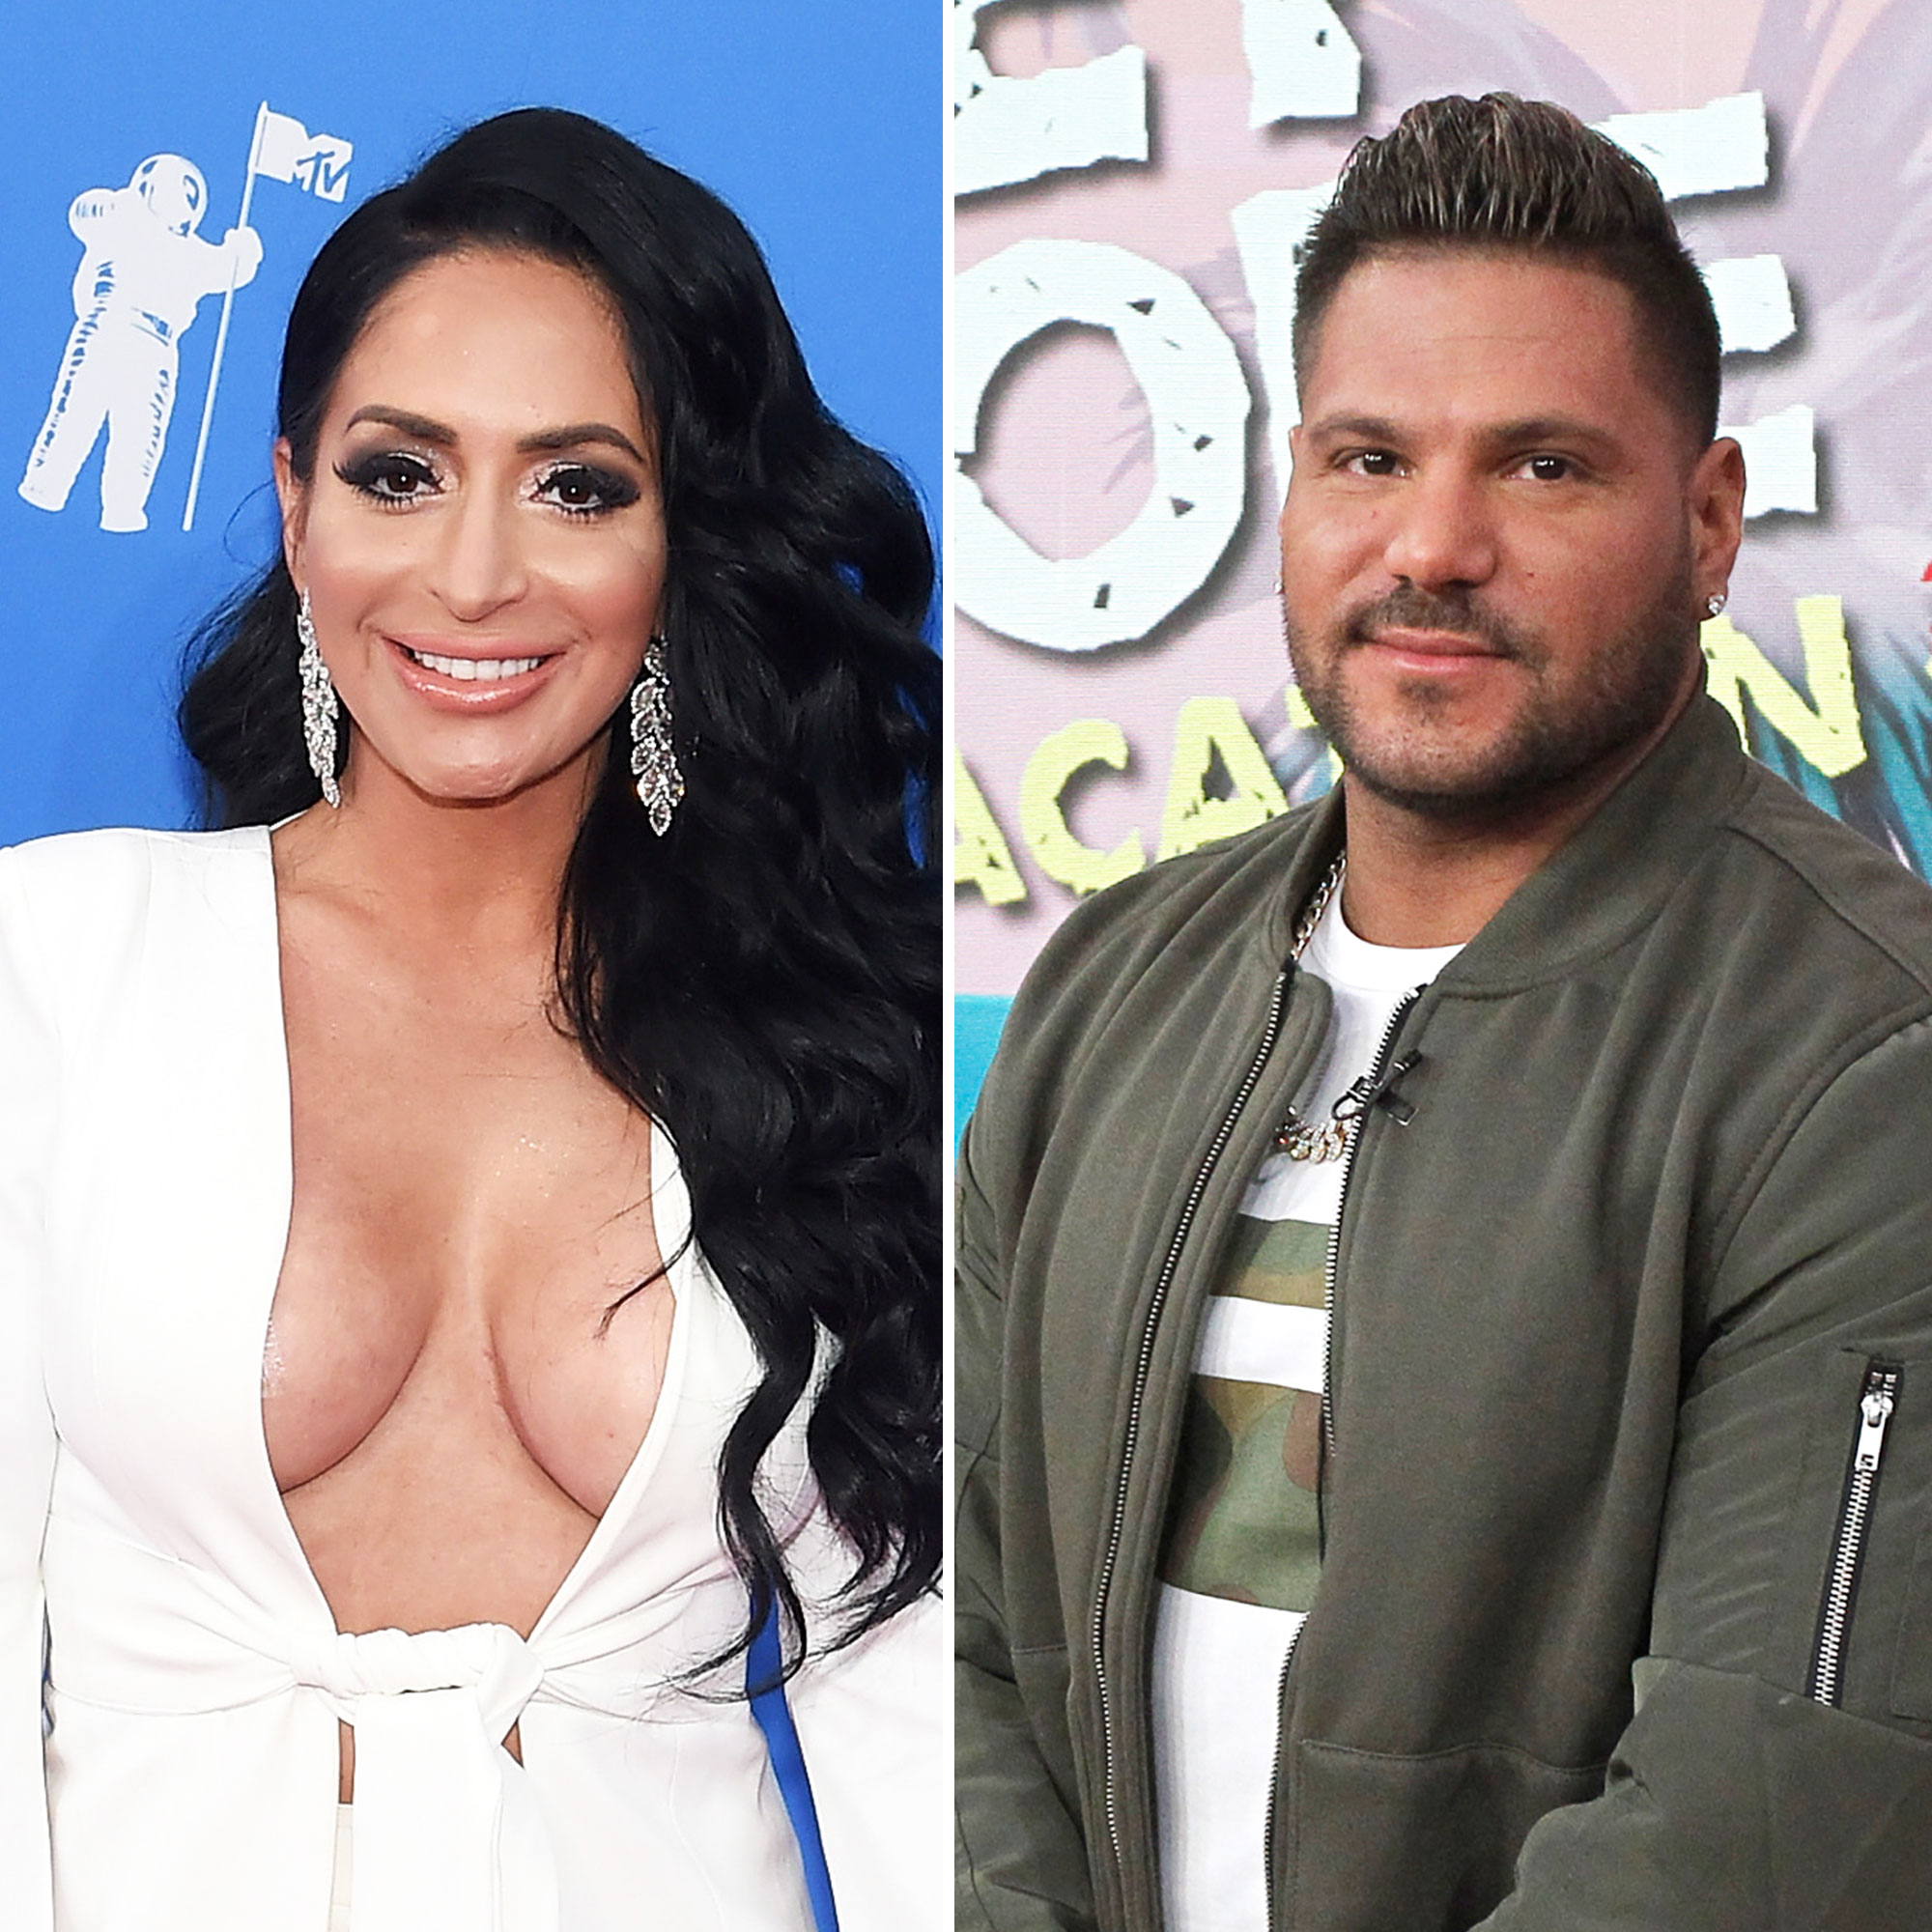 Fights between Angelina And Vinny Lead To Another Big Thing! | Buzz It up